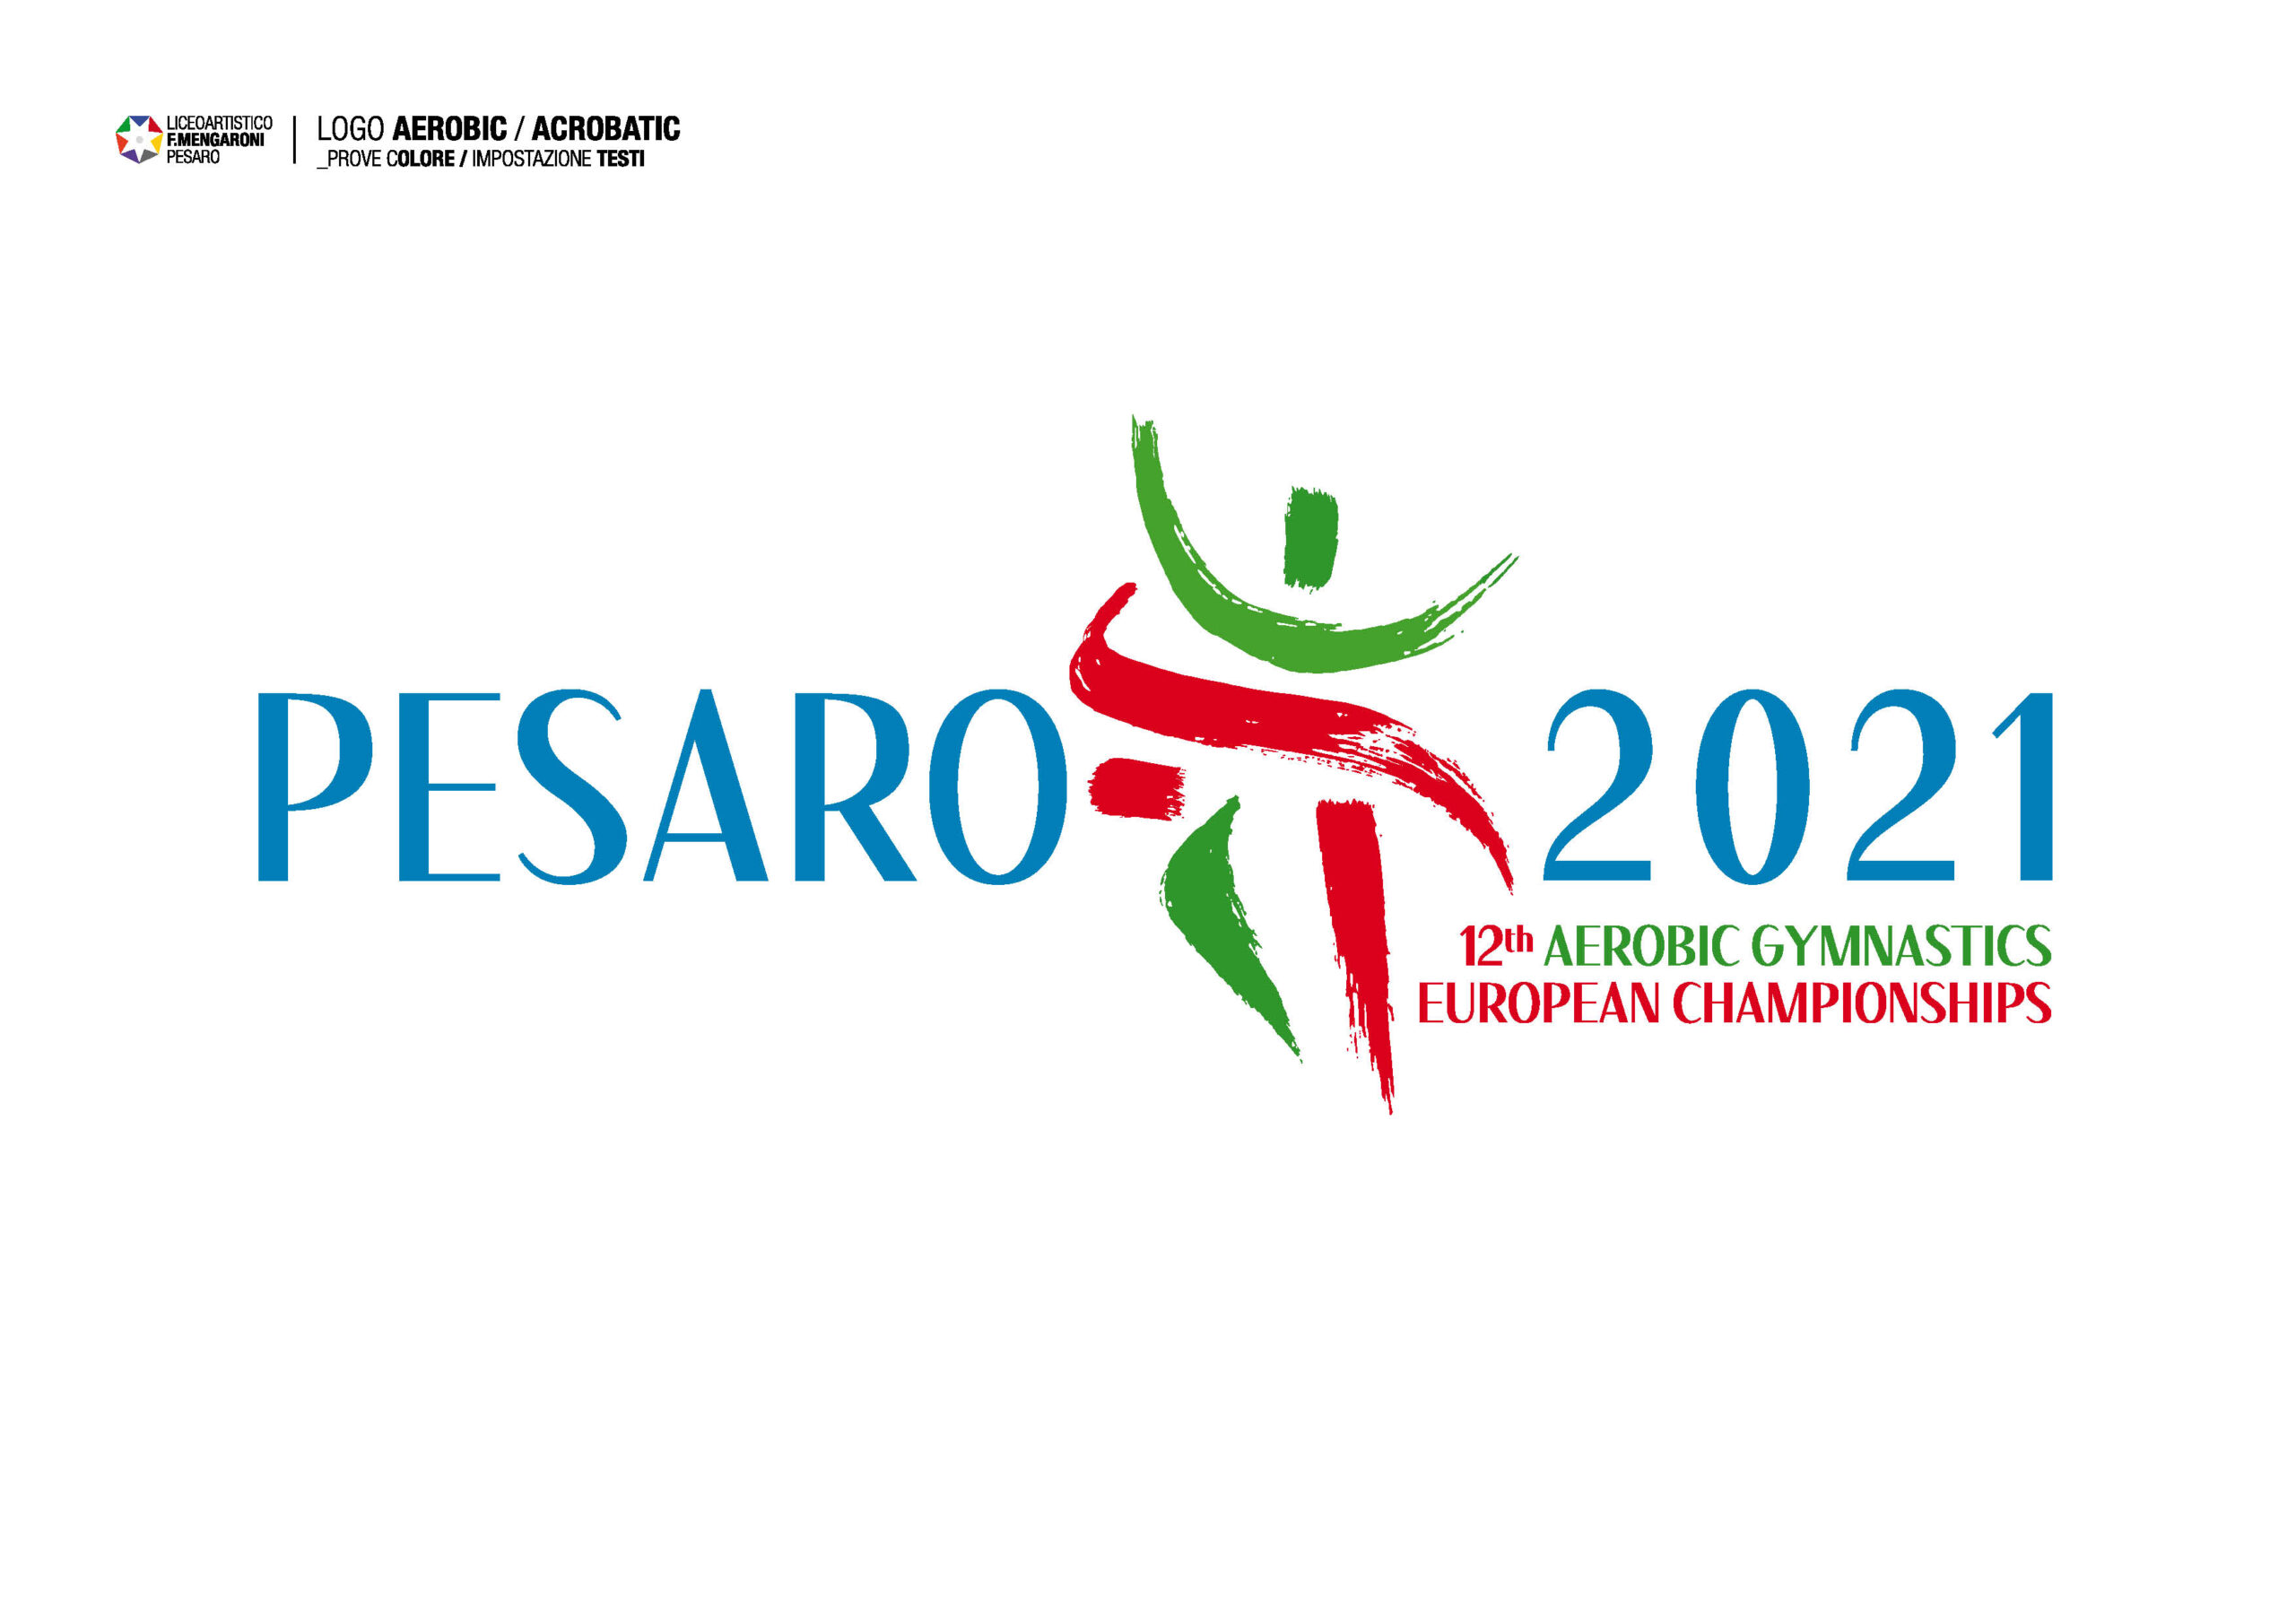 European Age Group_Pesaro/ITA